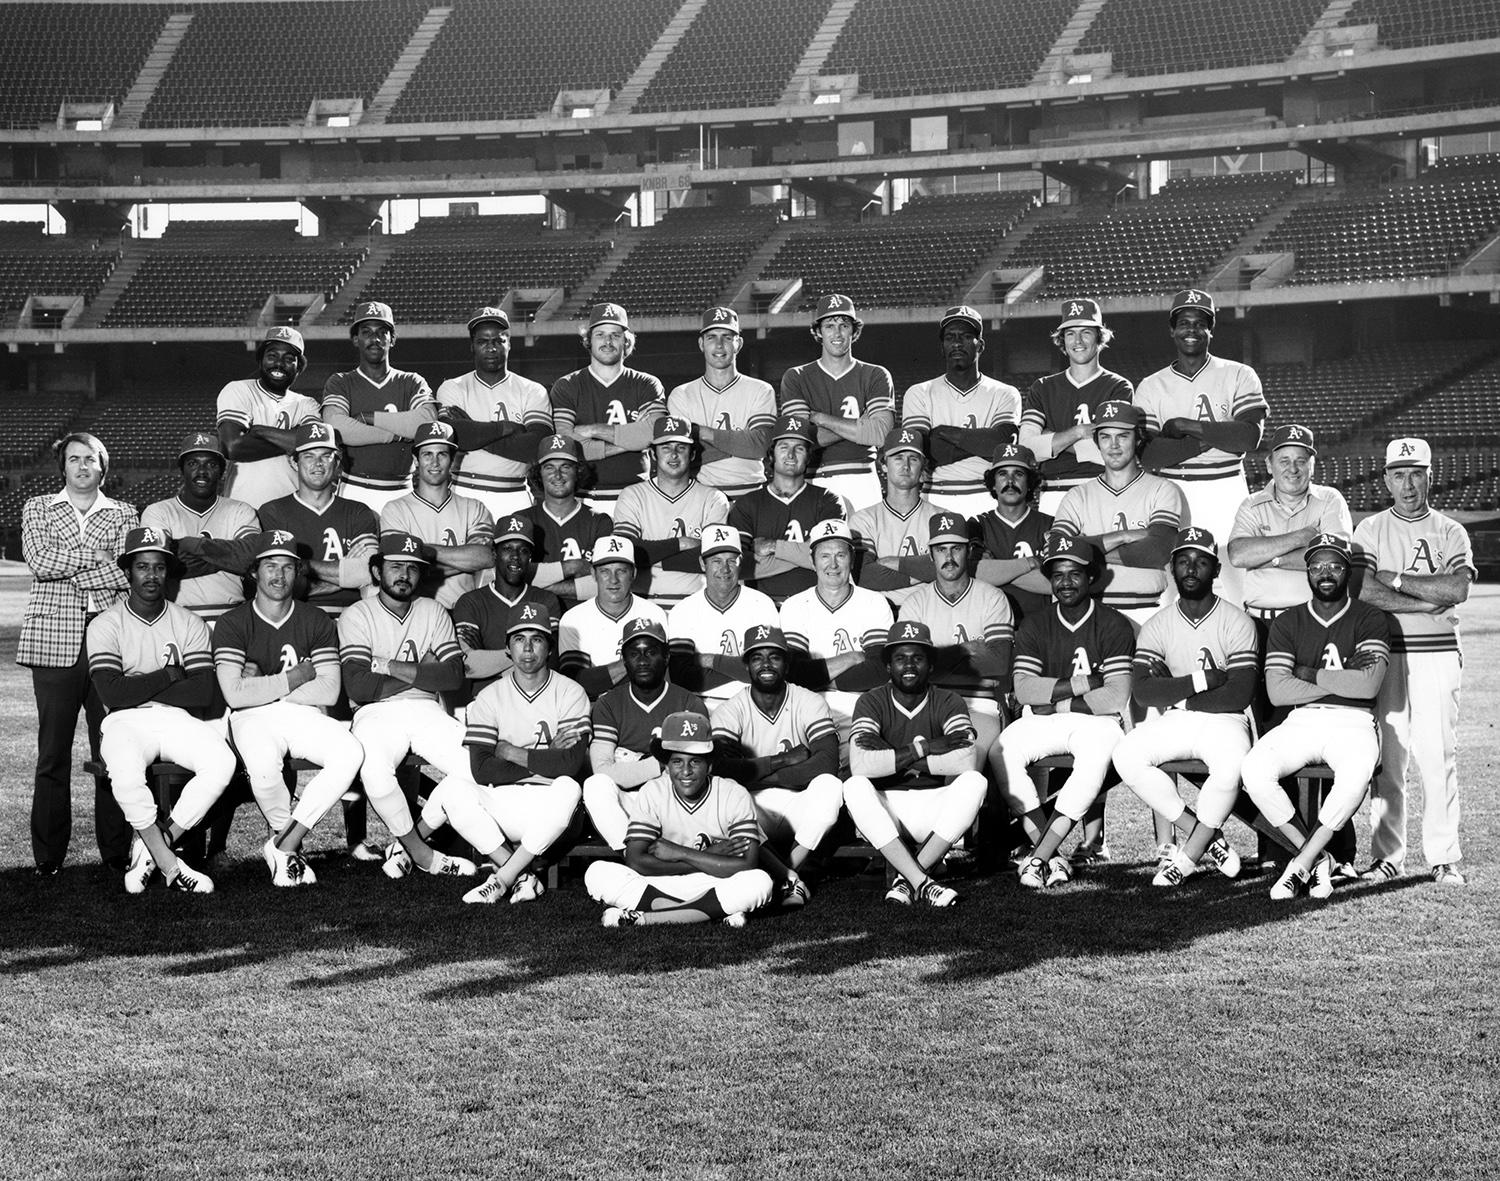 Willie Crawford was traded by the Houston Astros to the Oakland Athletics for corner infielder Denny Walling in 1977, and would wrap up his 14-year big league career there. Crawford is pictured in the top row, third from left. (National Baseball Hall of Fame)